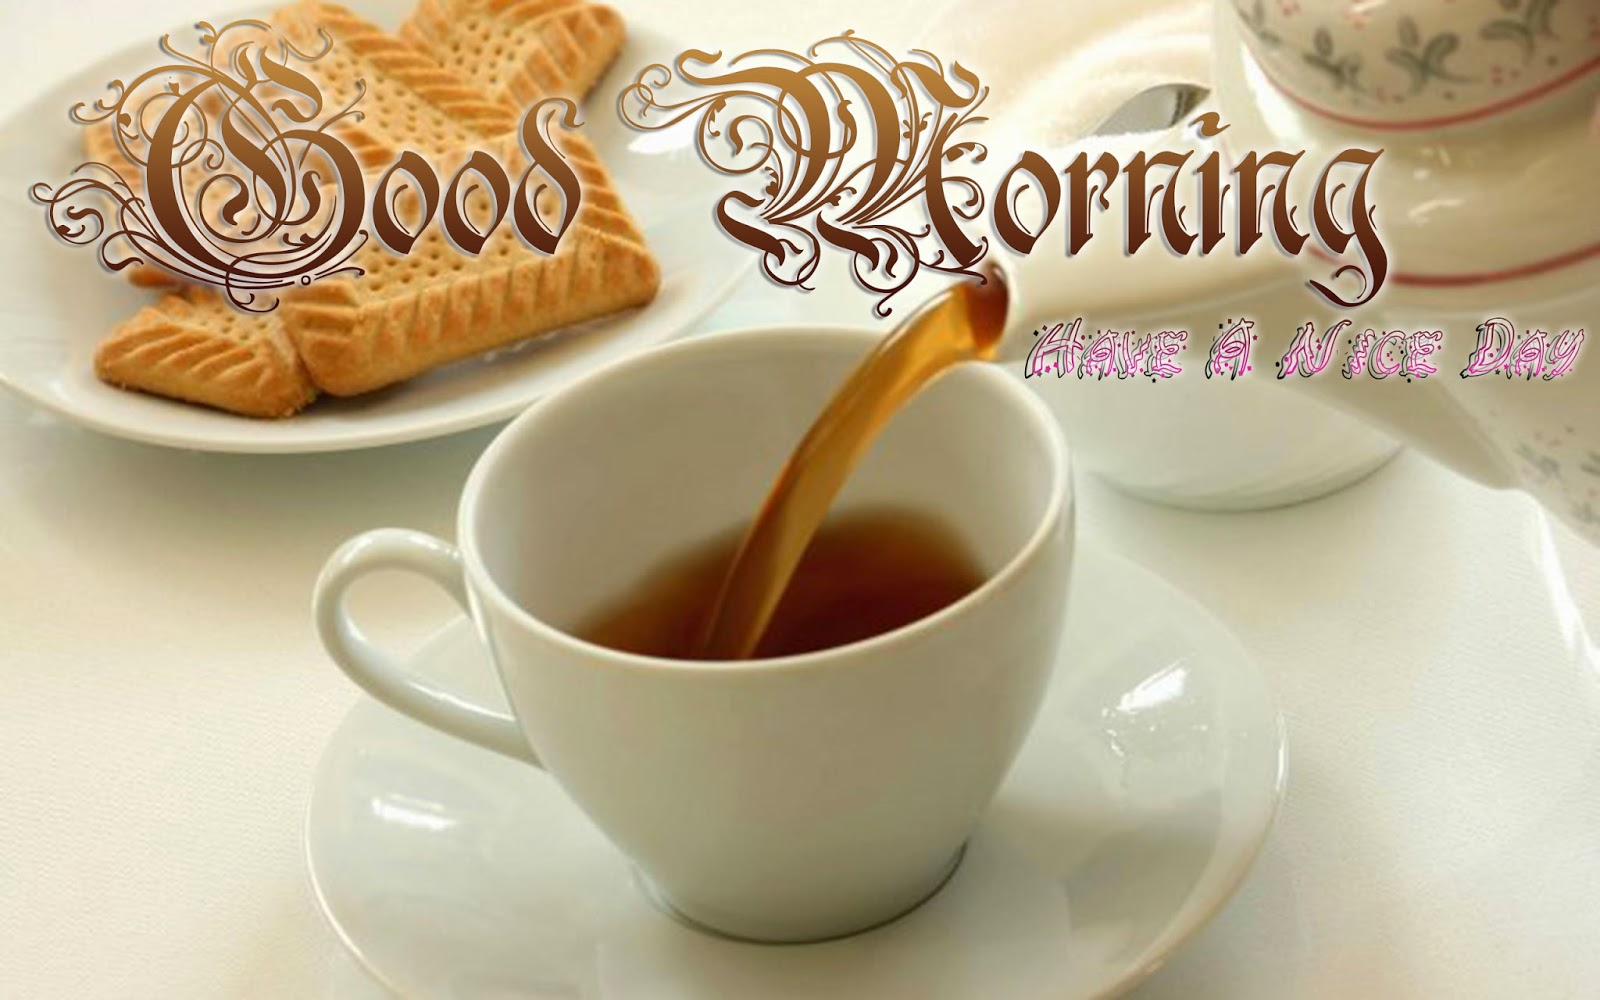 Good-Morning-Wallpaper-With-Cup-Of-Tea-And-Biscuits-Image-HD-Wide